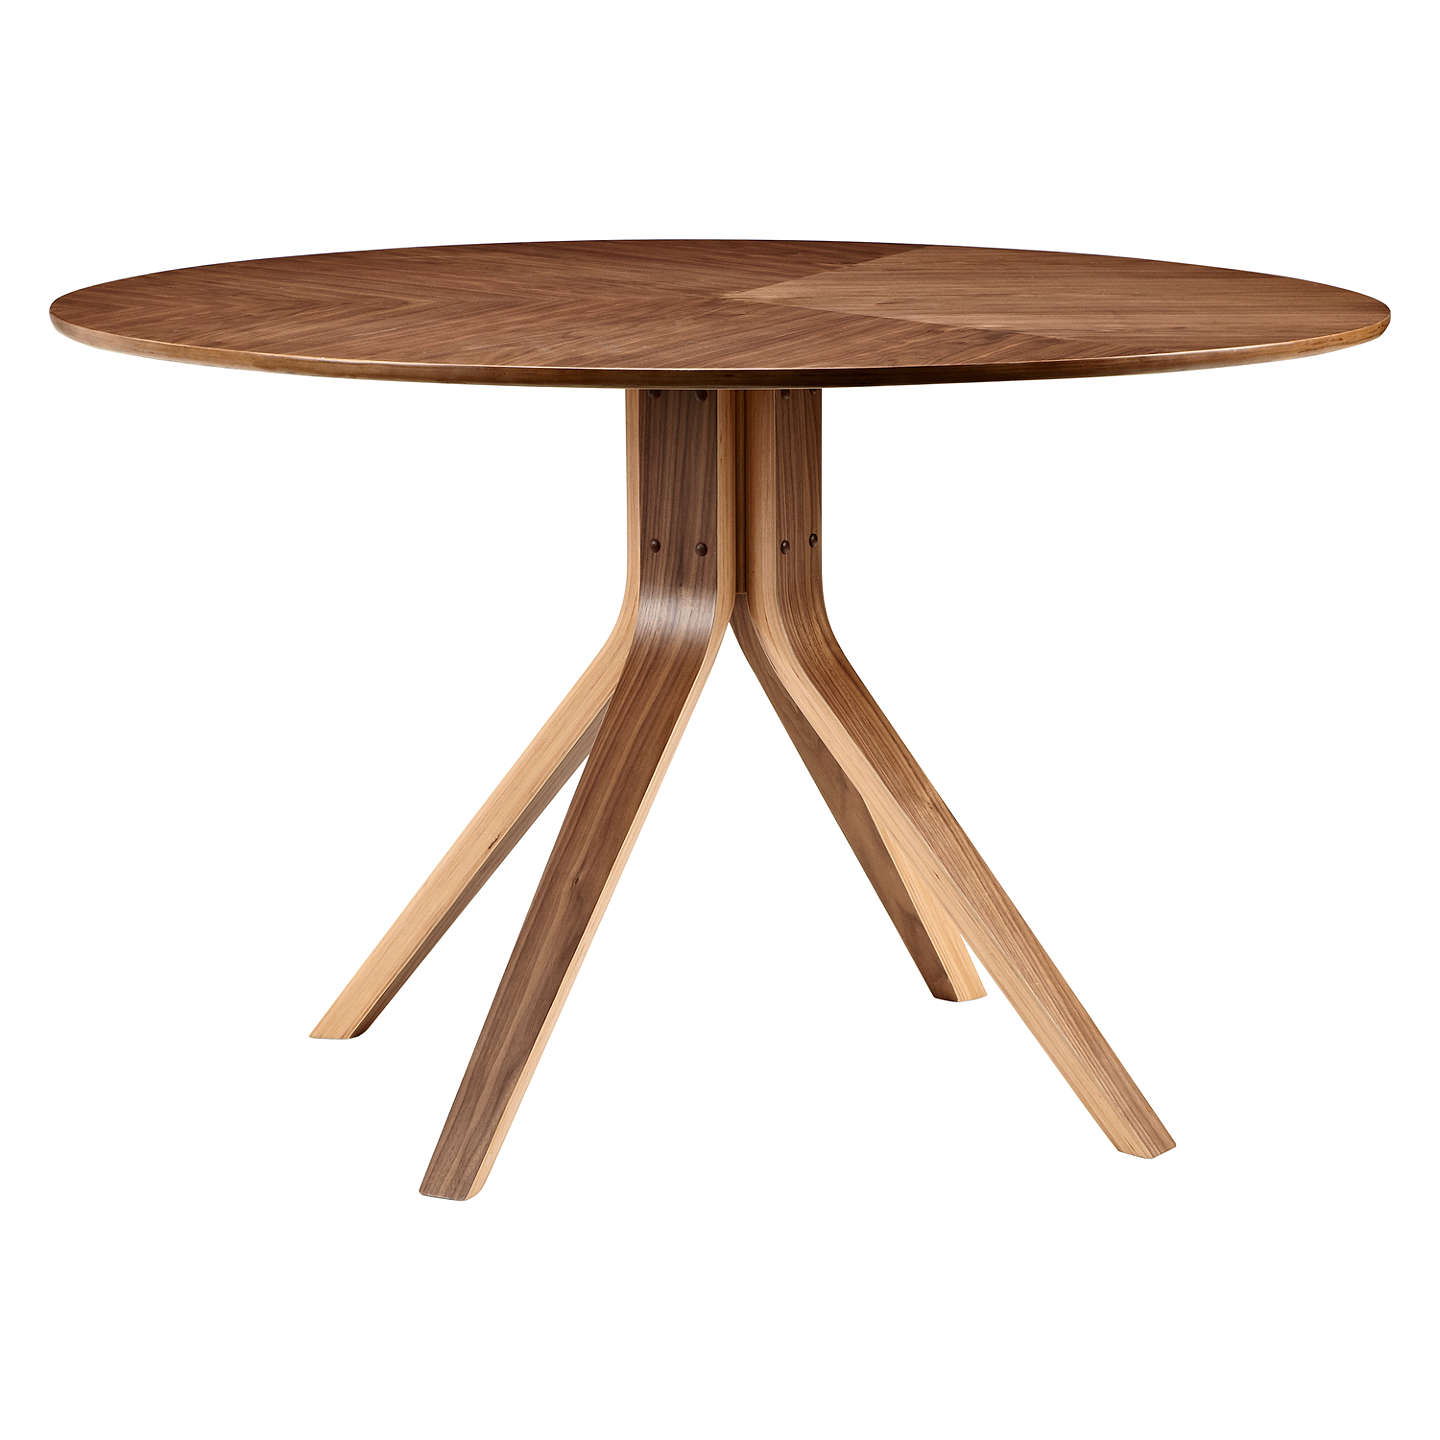 House By John Lewis Radar 6 Seater Round Dining Table